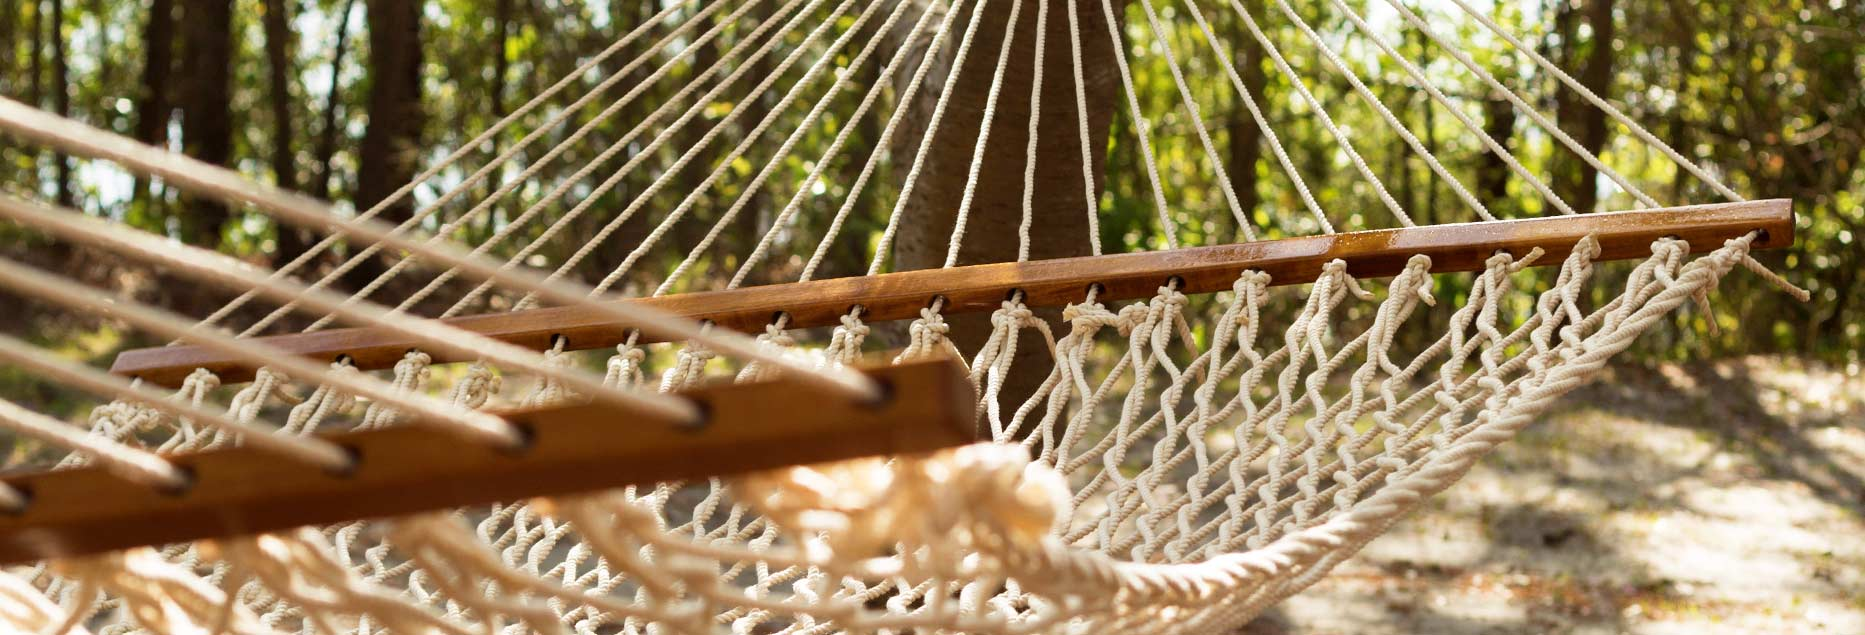 Shop Hammocks from DFOhome